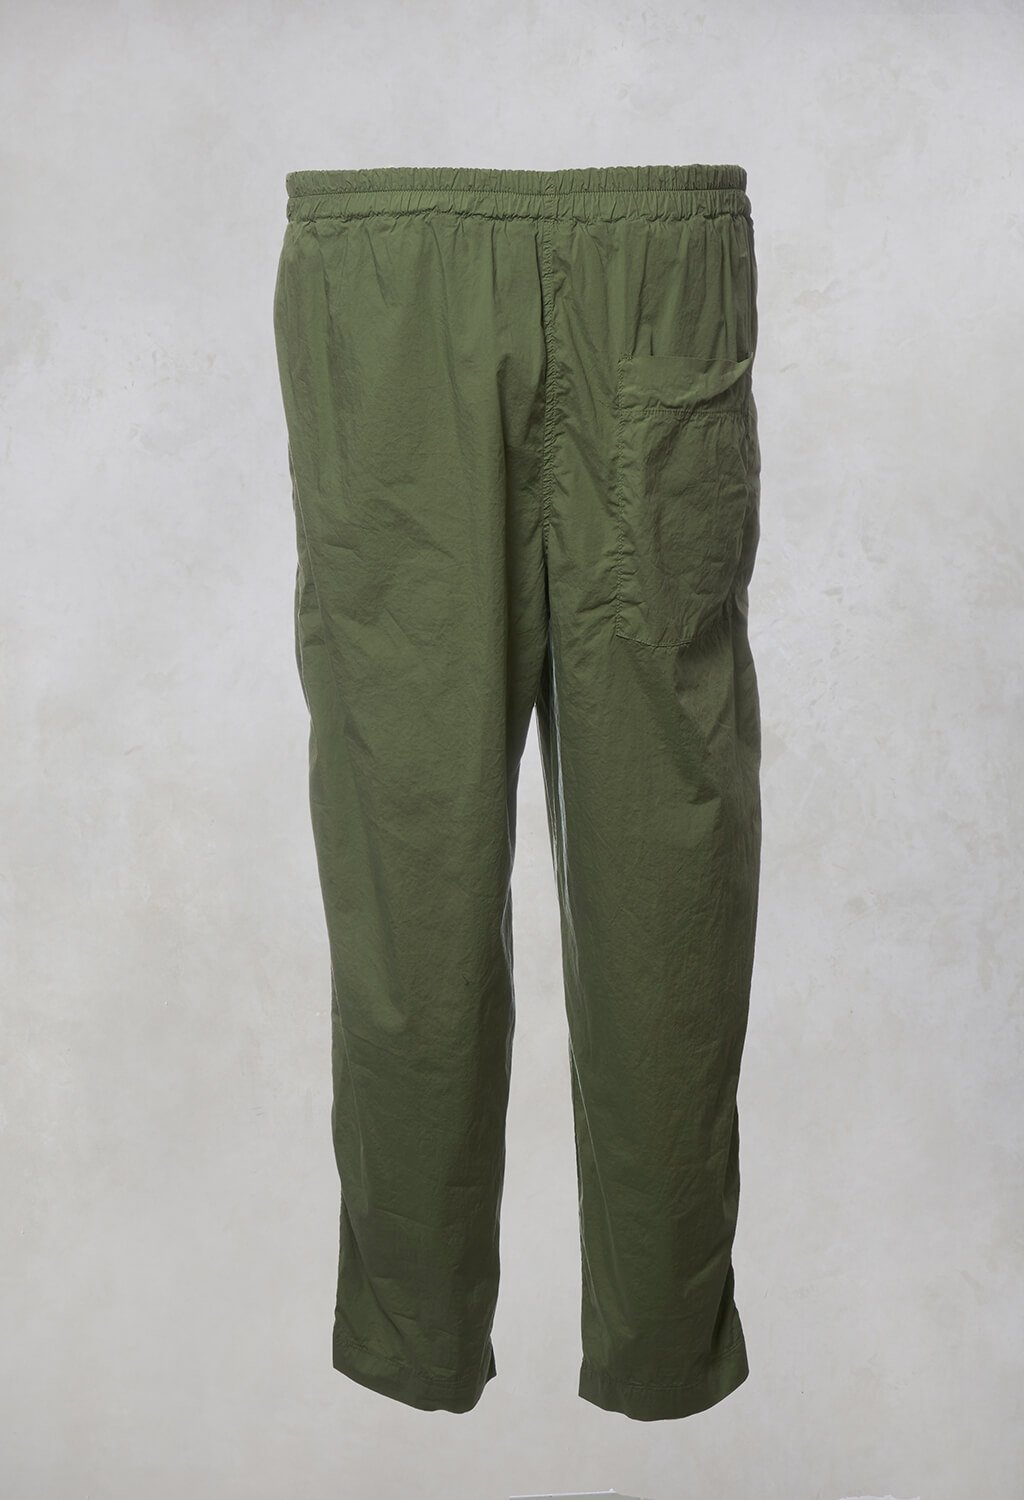 Terra P Trousers in Aloe